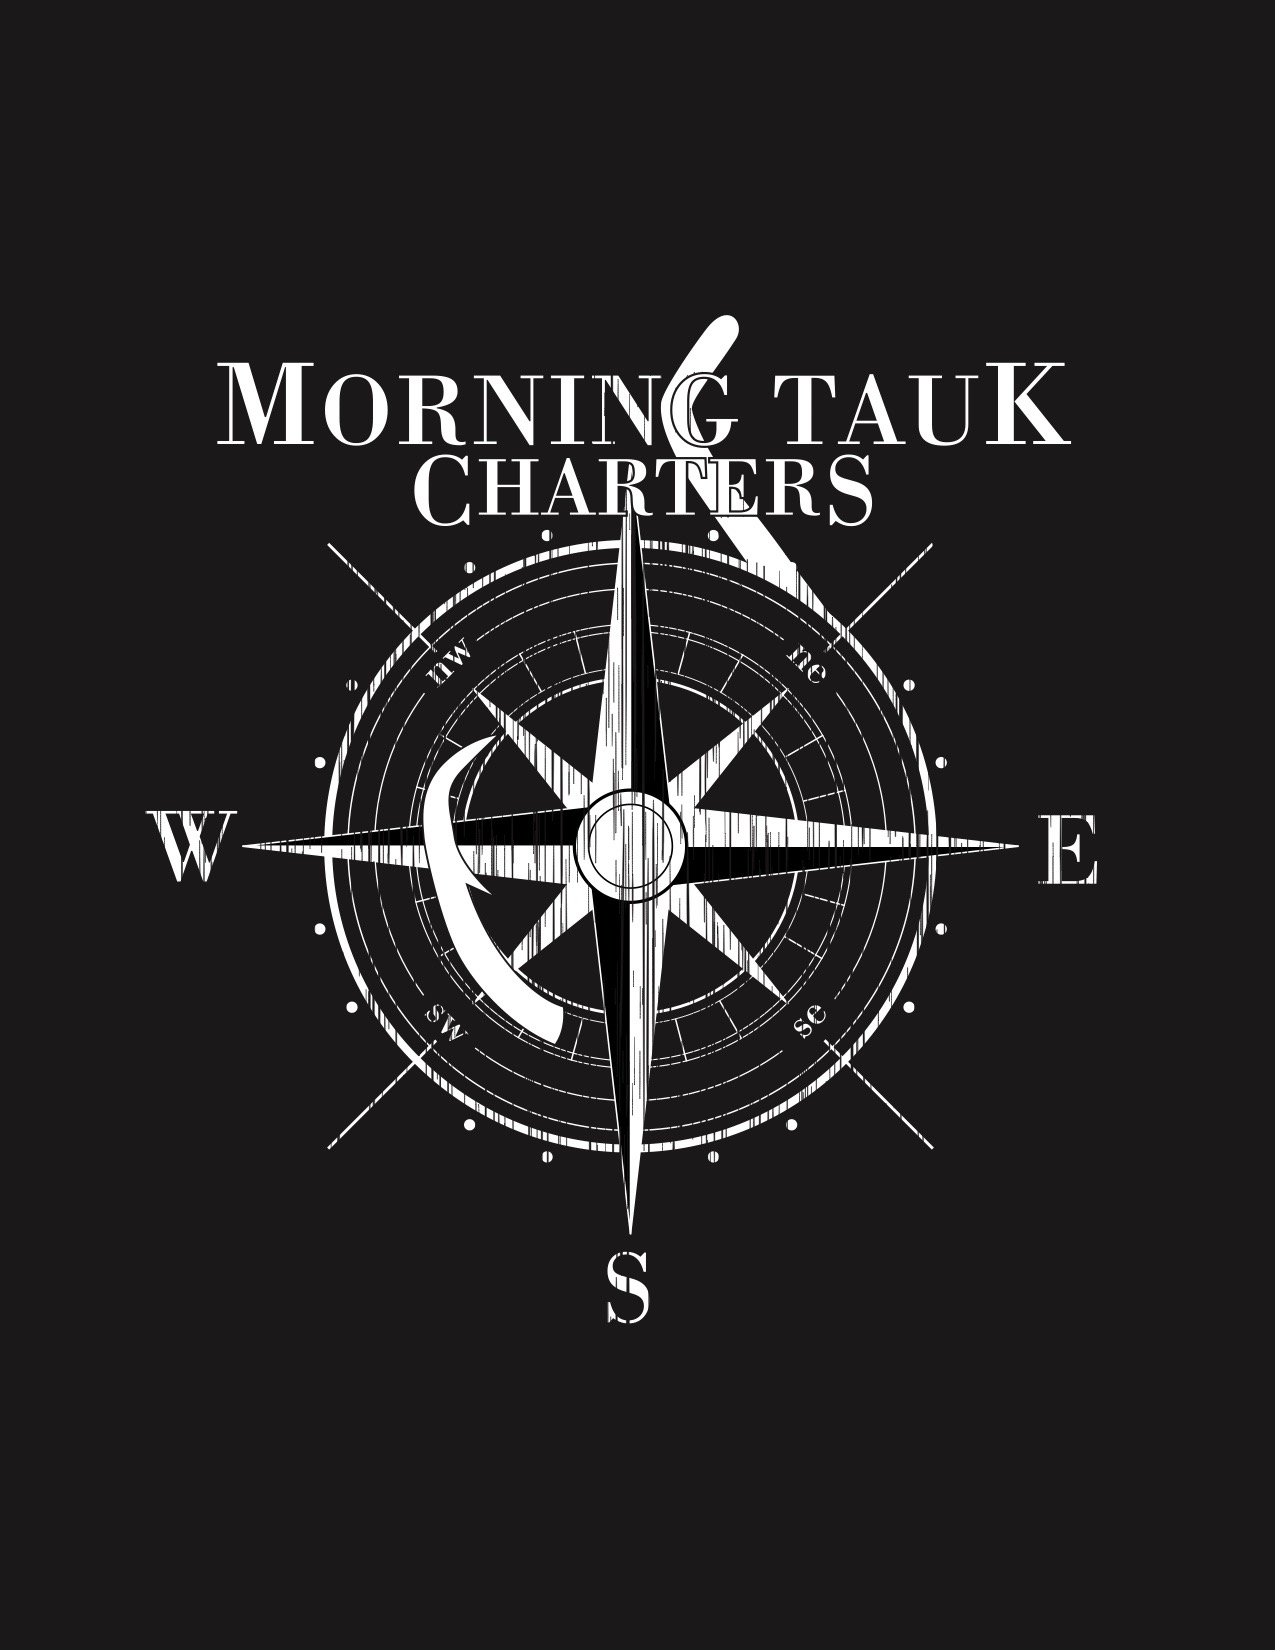 MorningTaukCharters